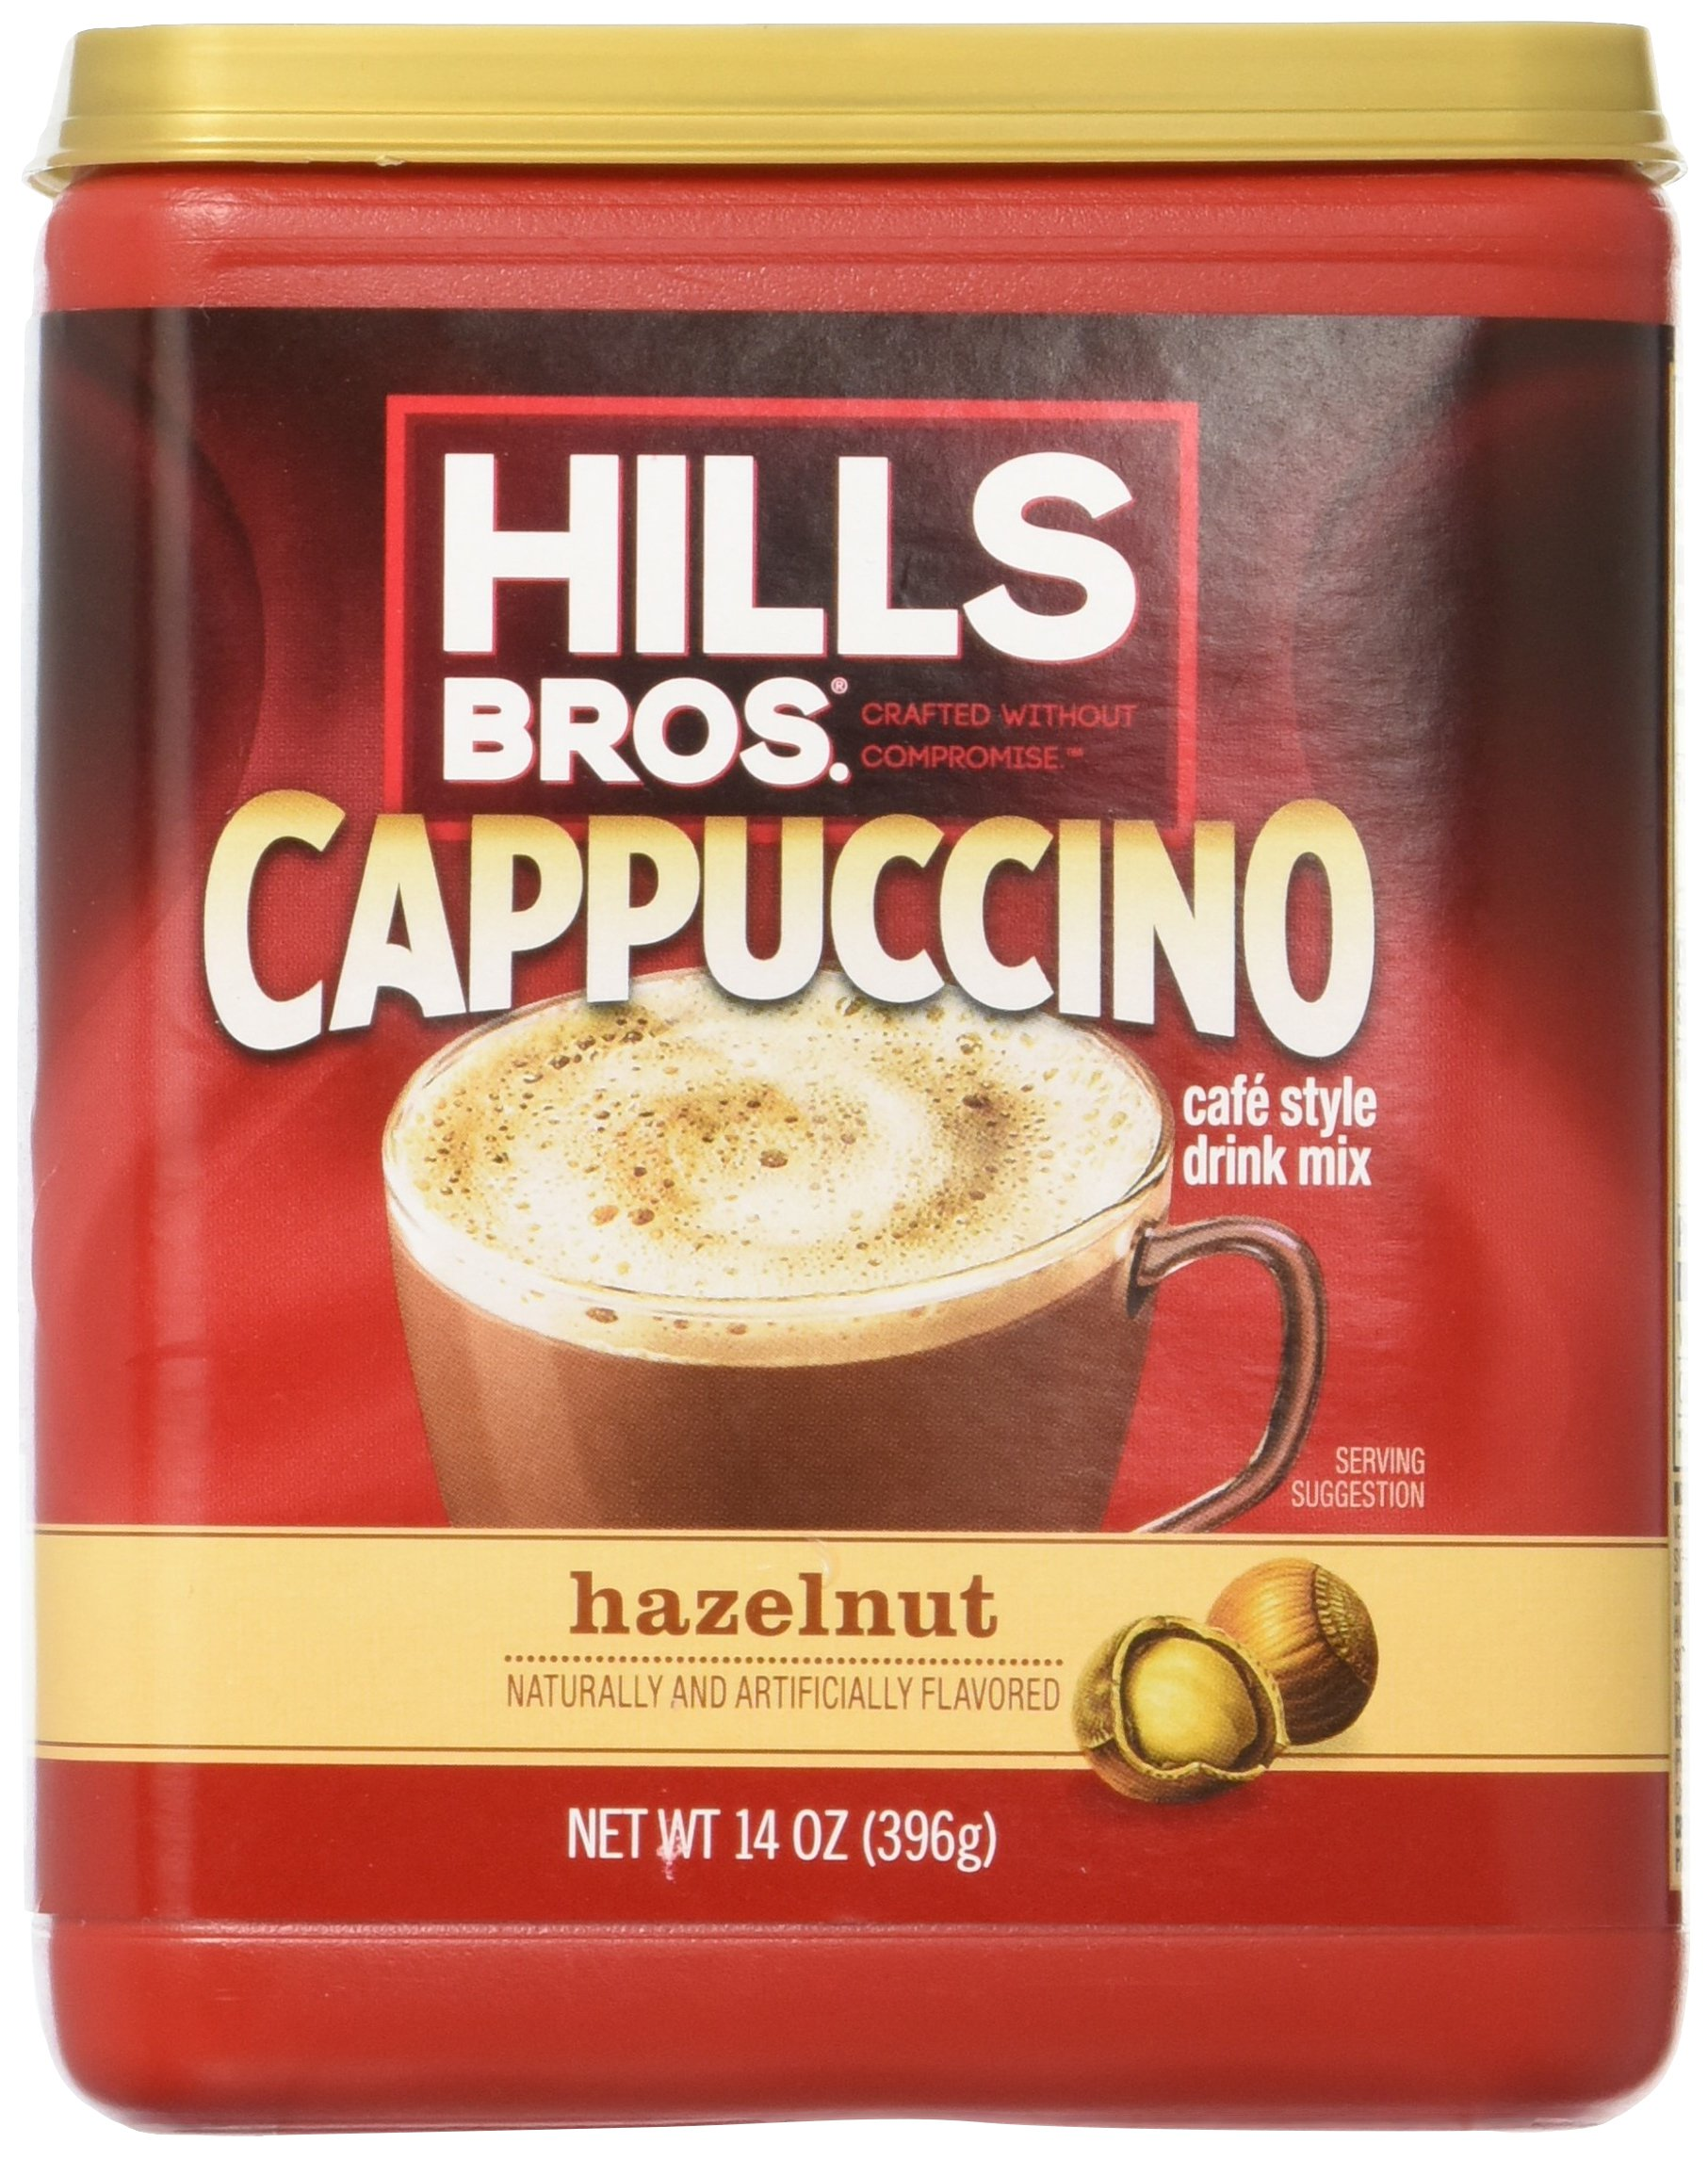 Hills Bros. Instant Cappuccino Mix, Hazelnut Cappuccino Mix - Easy to Use, Enjoy Coffeehouse Flavor from Home - Frothy, Decadent Cappuccino with a Smooth Hazelnut Flavor (14 Ounces, Pack of 6)